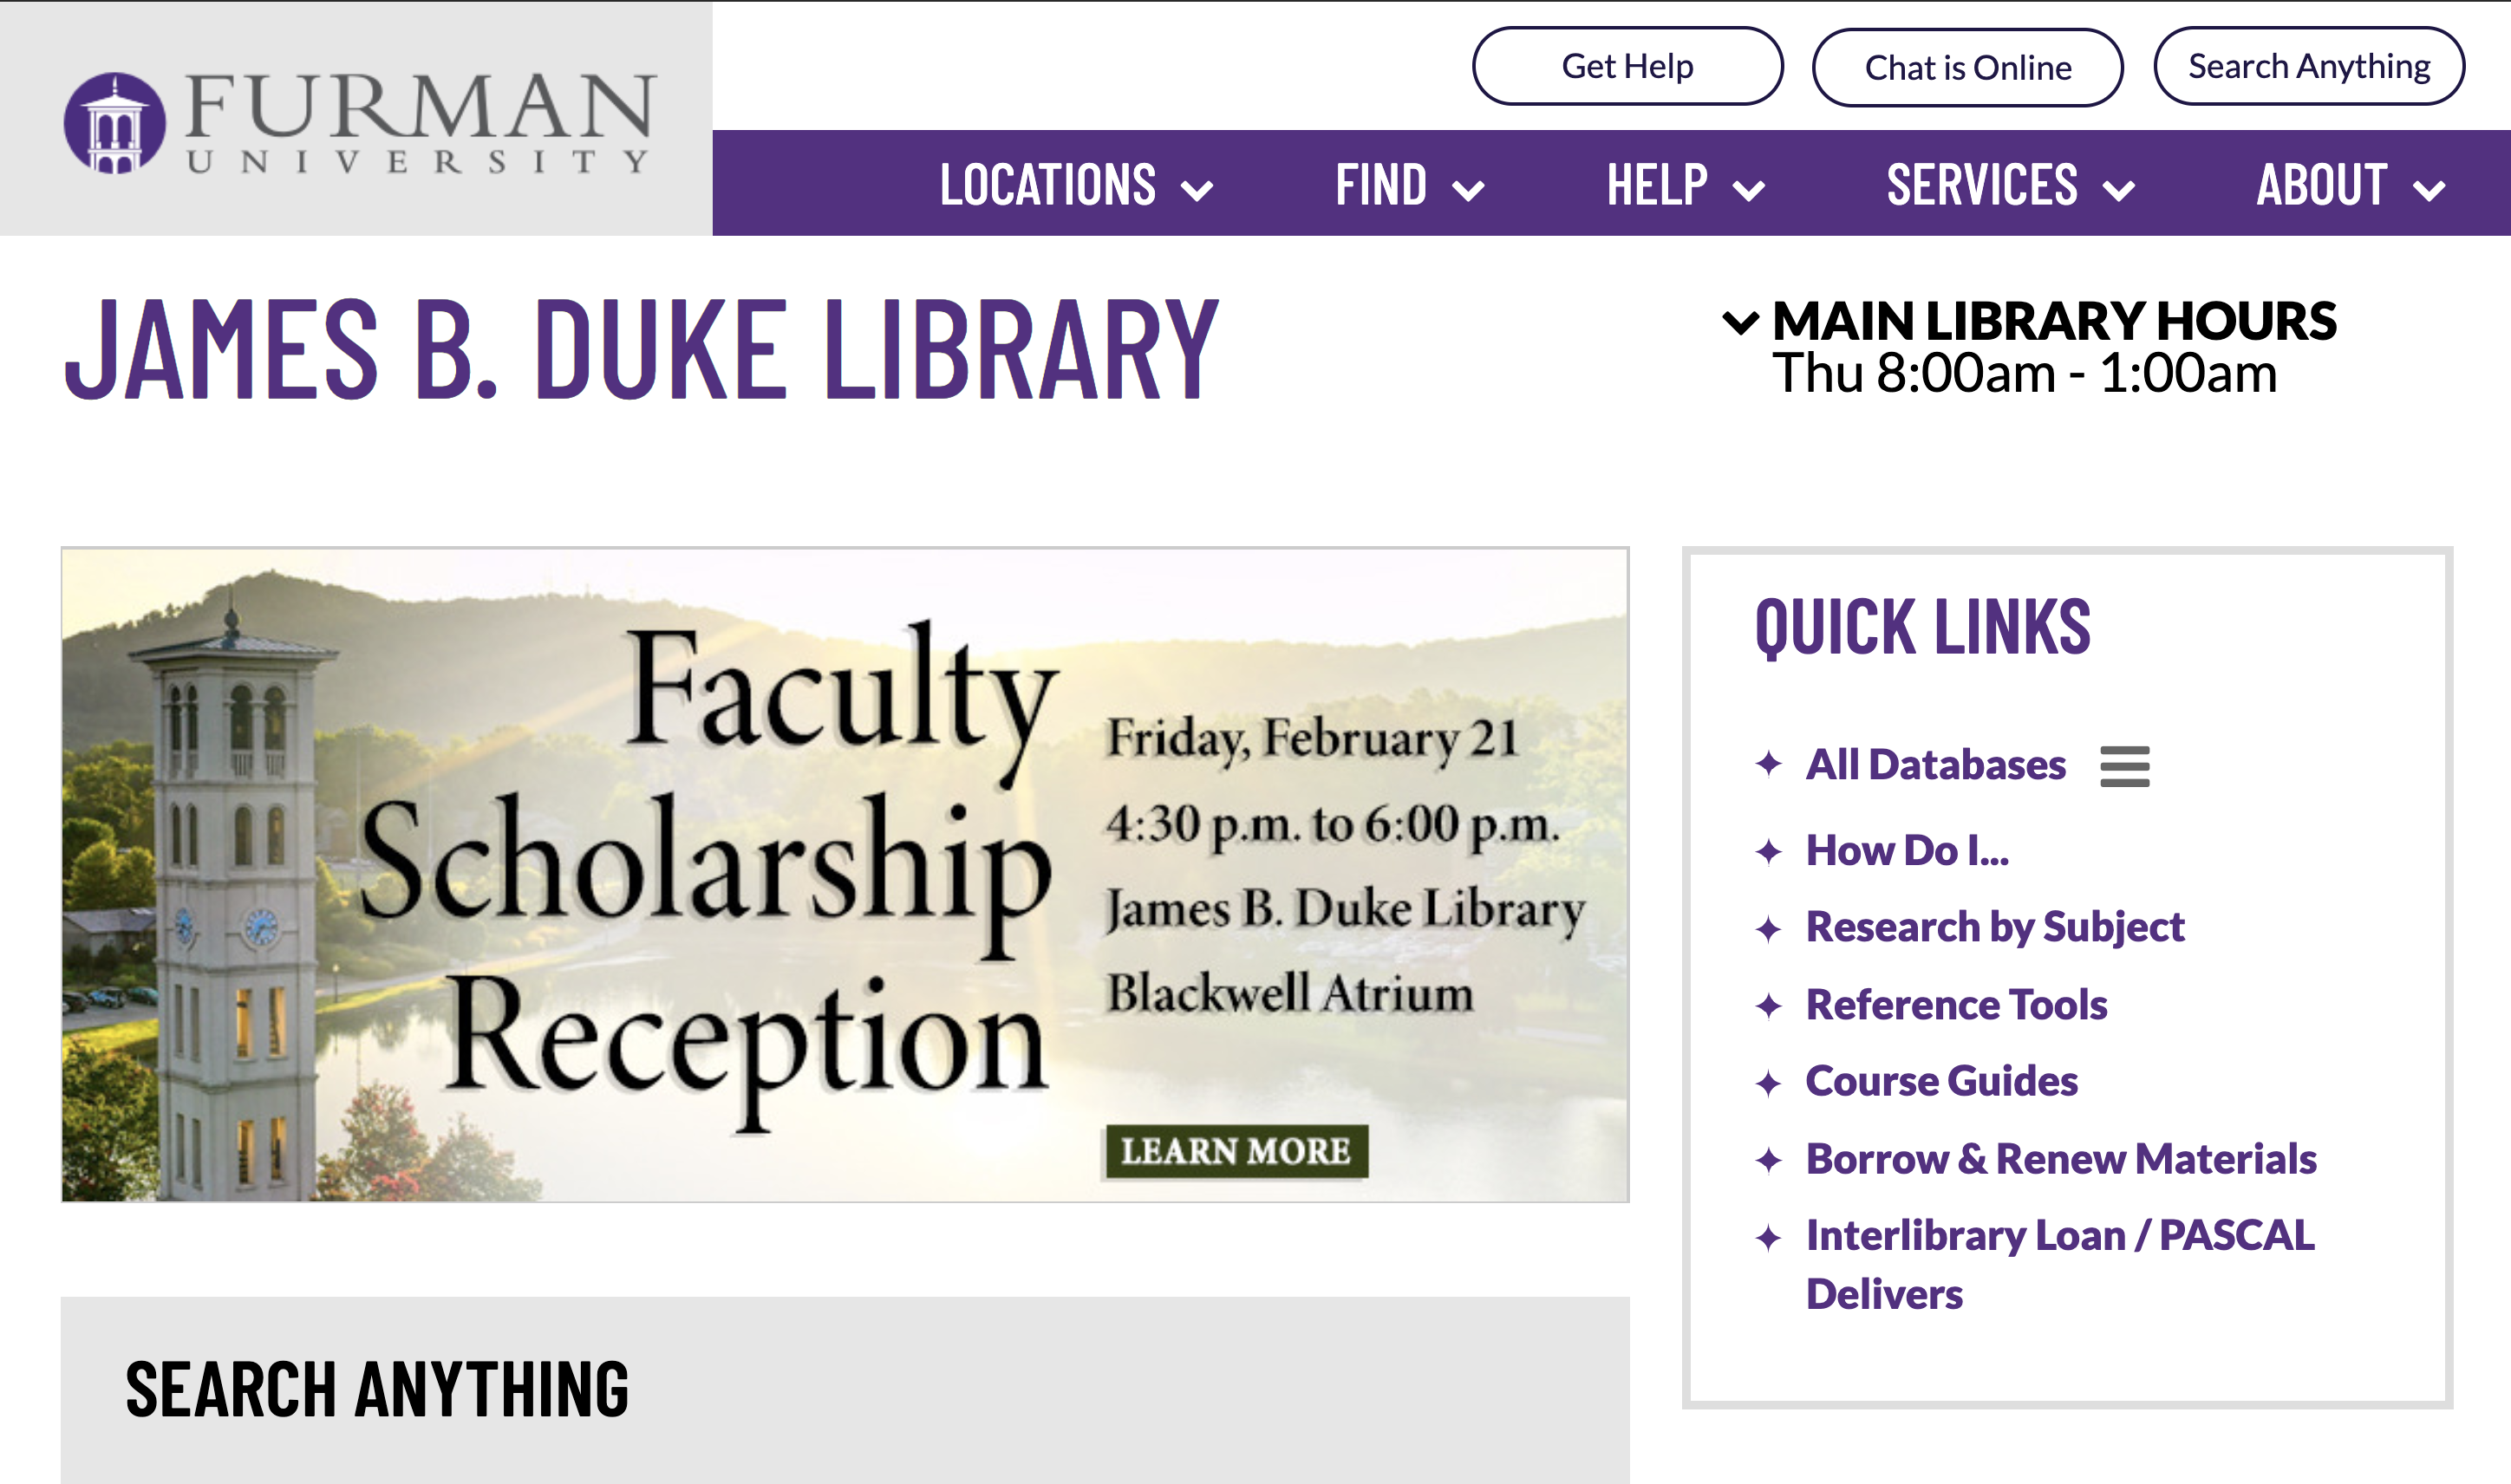 Furman University Library